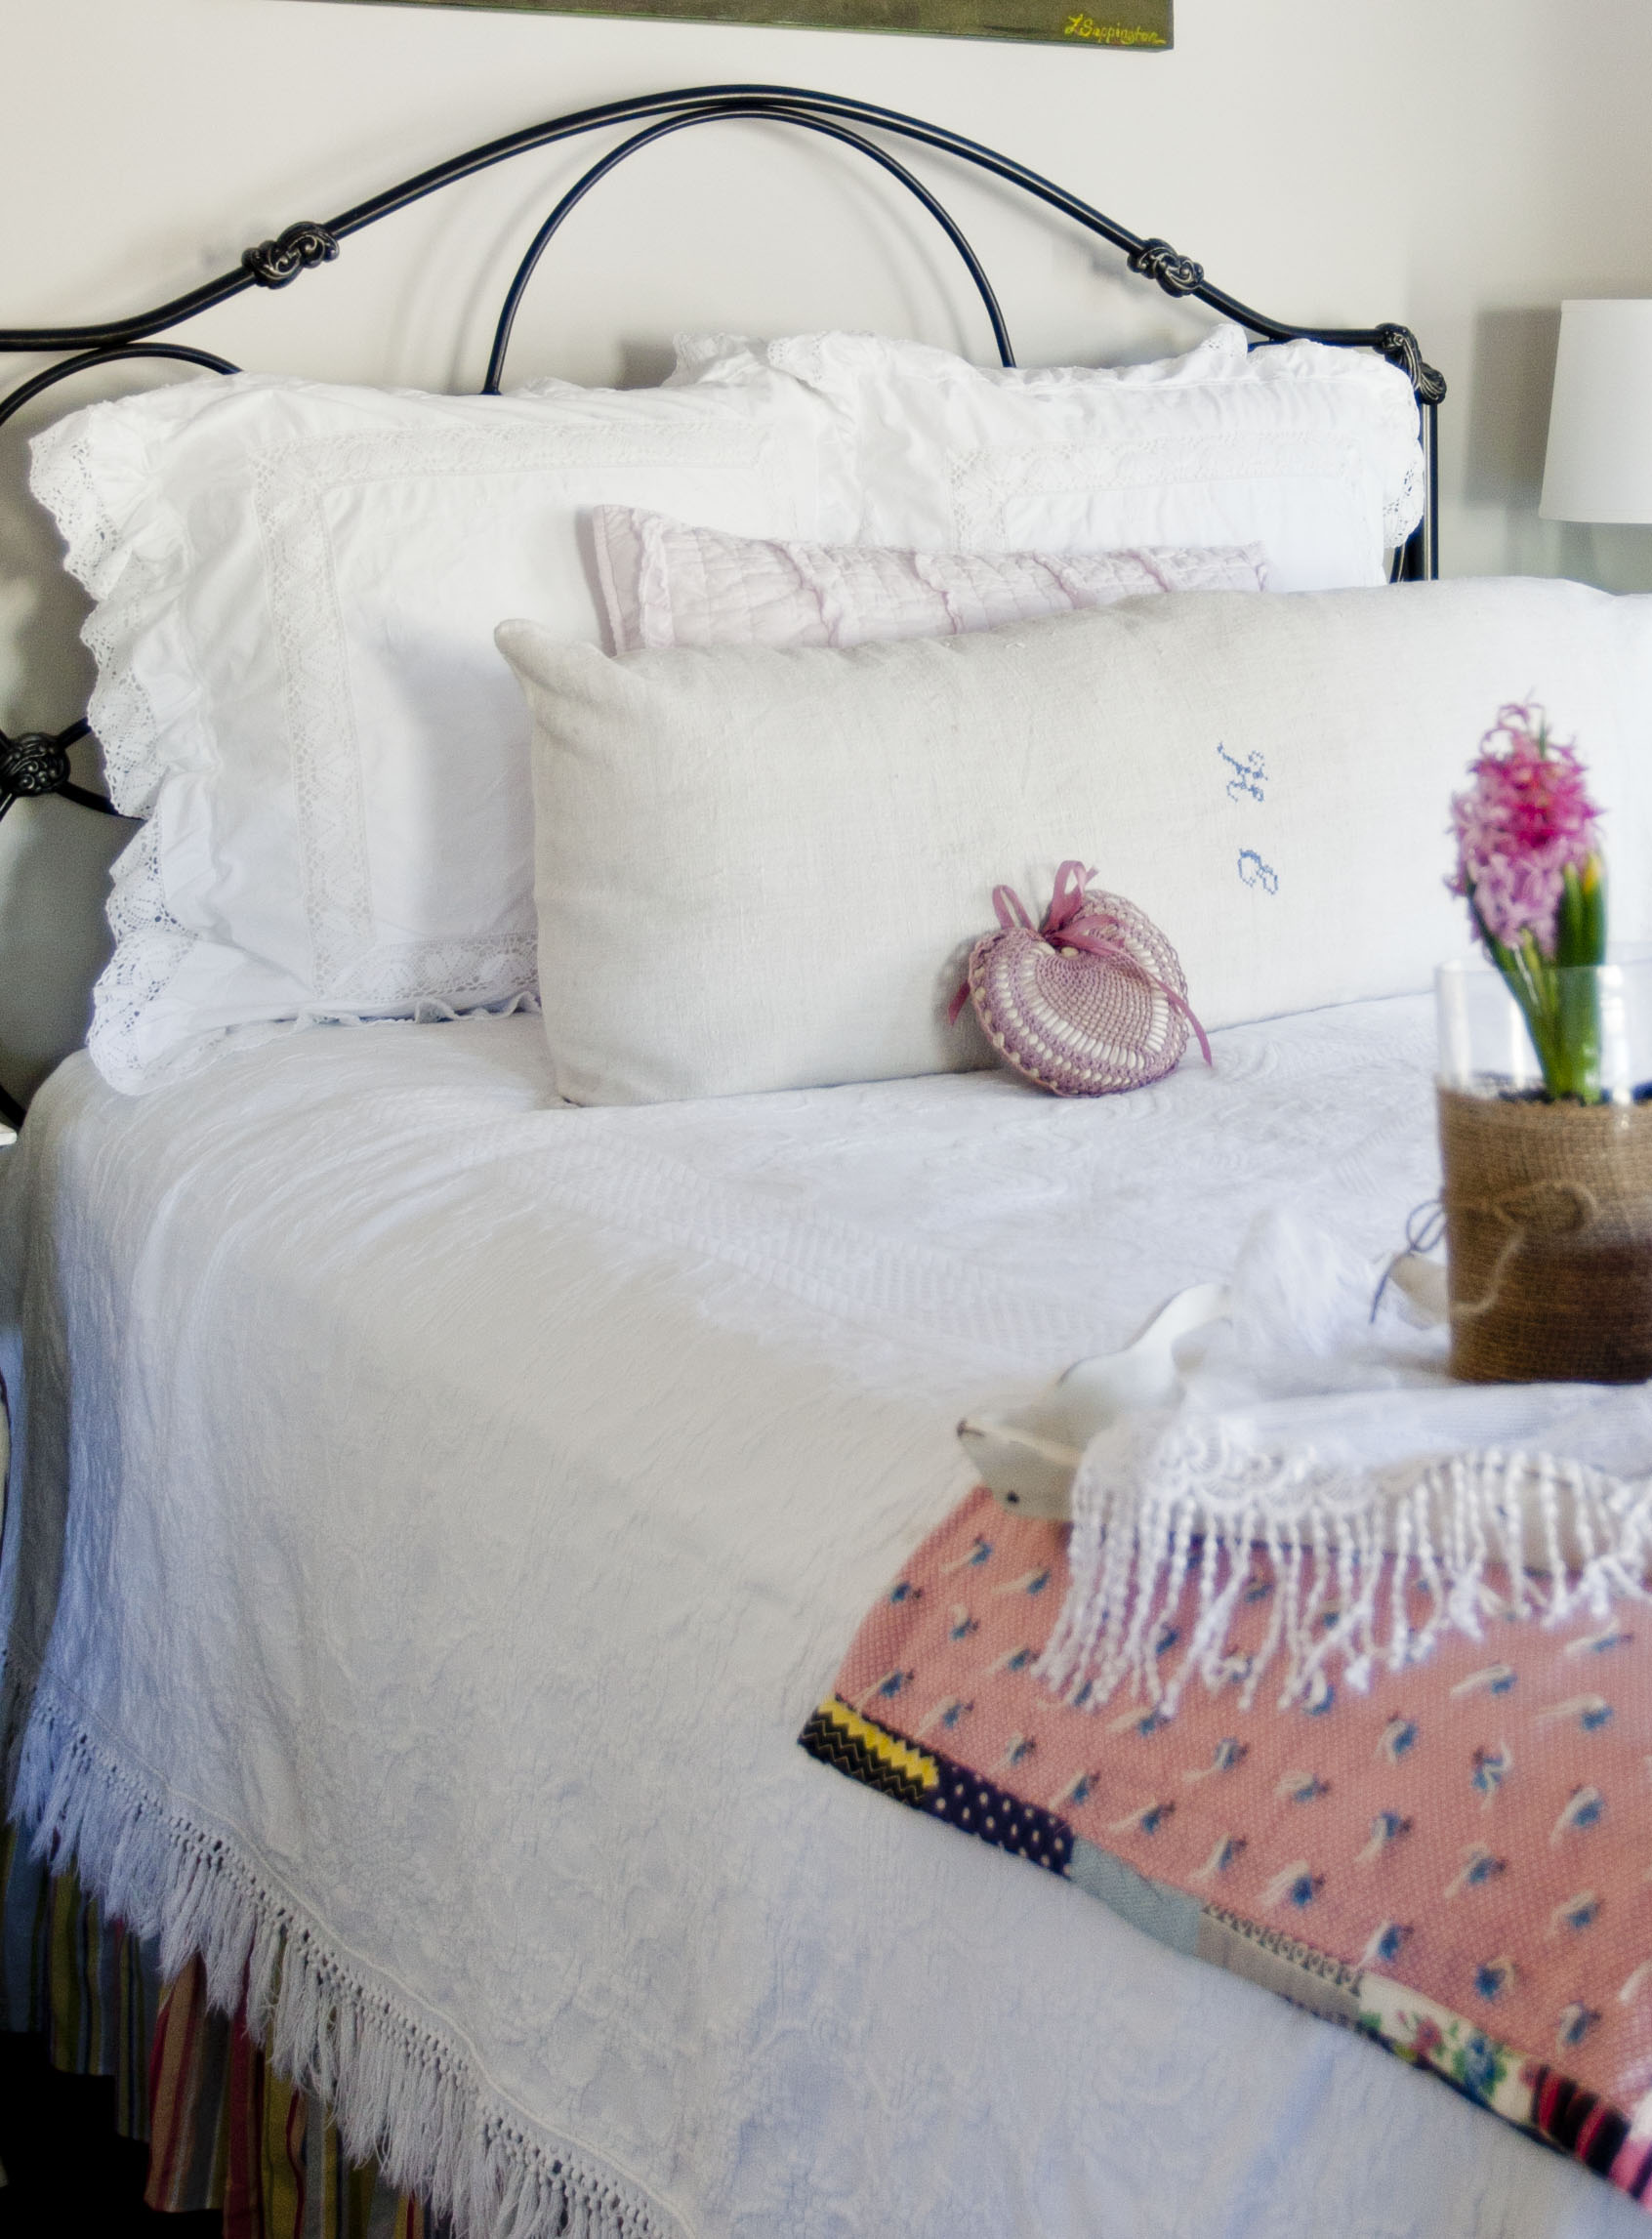 Marvelous Below the pillow shams are vintage cotton shams I thought they were so charming The bedspread below is vintage cotton